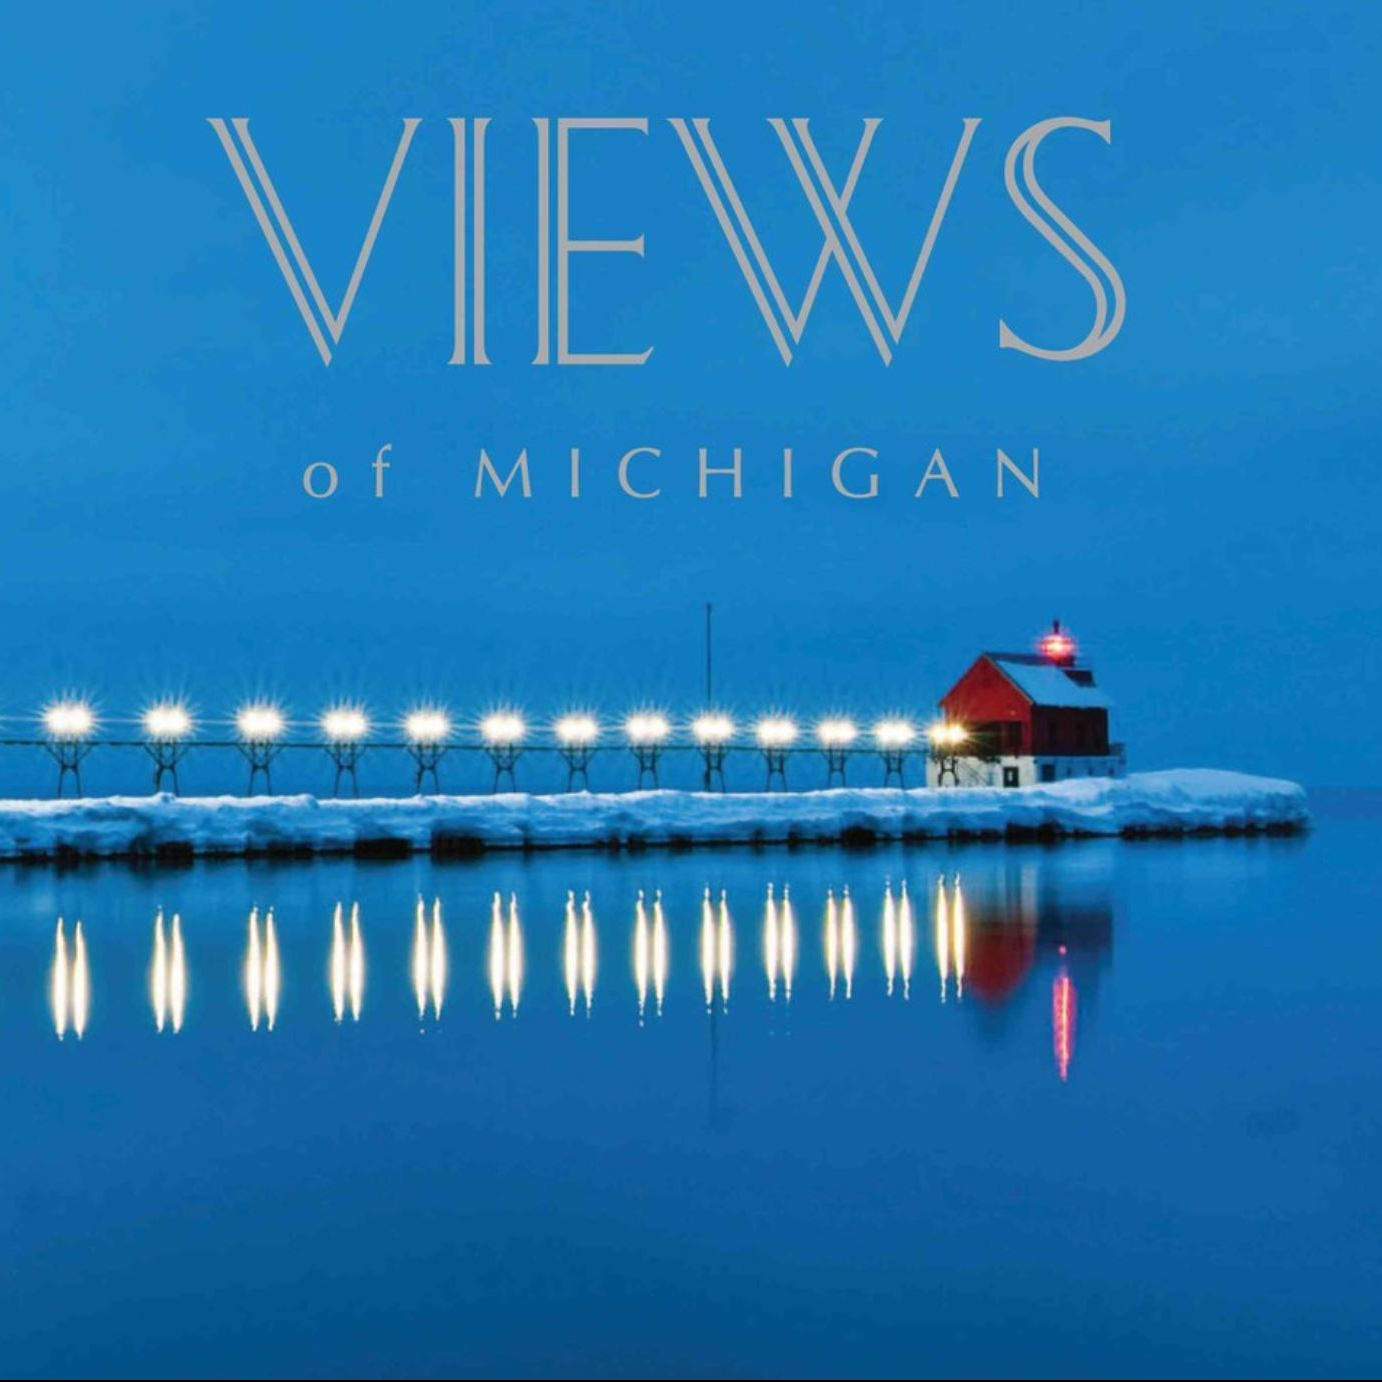 A blue book cover featuring a red lighthouse over water on a winter evening.